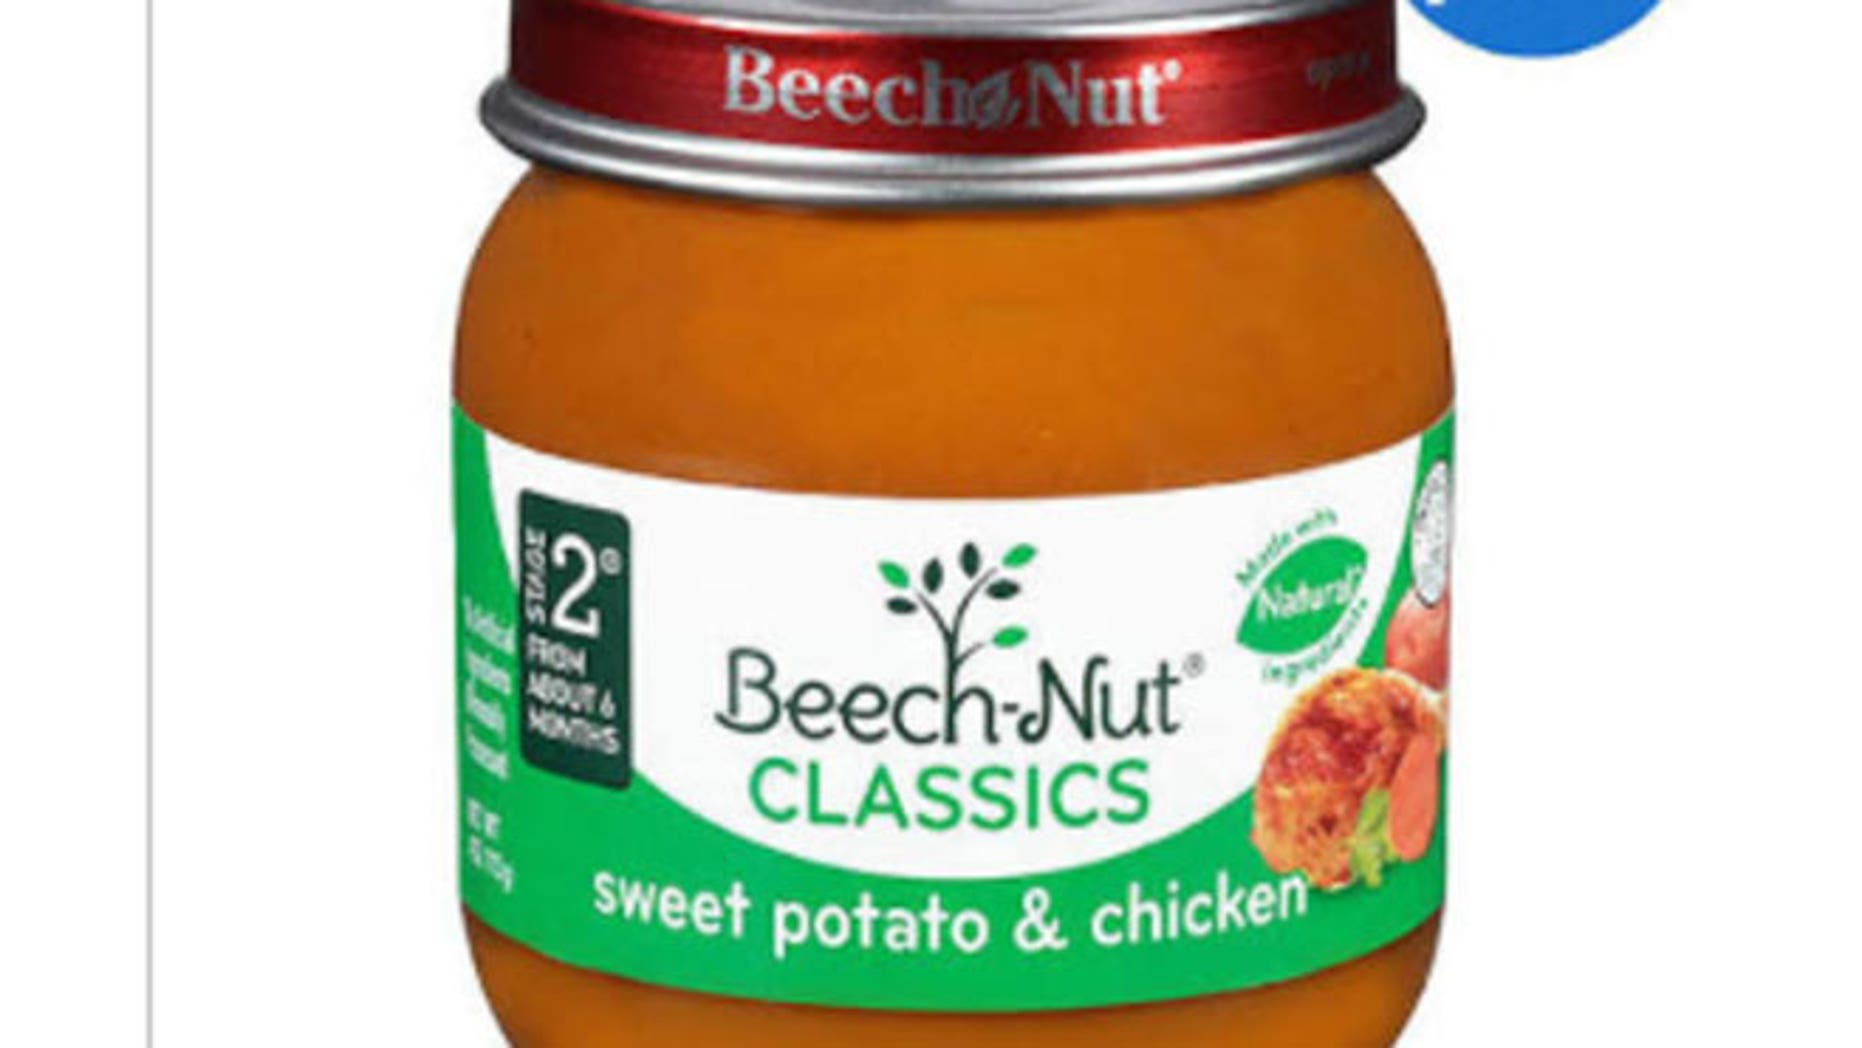 "Four-ounce glass jars labeled ""Stage 2 Beech-Nut CLASSICS sweet potato & chicken"" is the variety at risk of contamination. The potentially affected products were produced Dec. 12, 2014 and expire in December 2016."